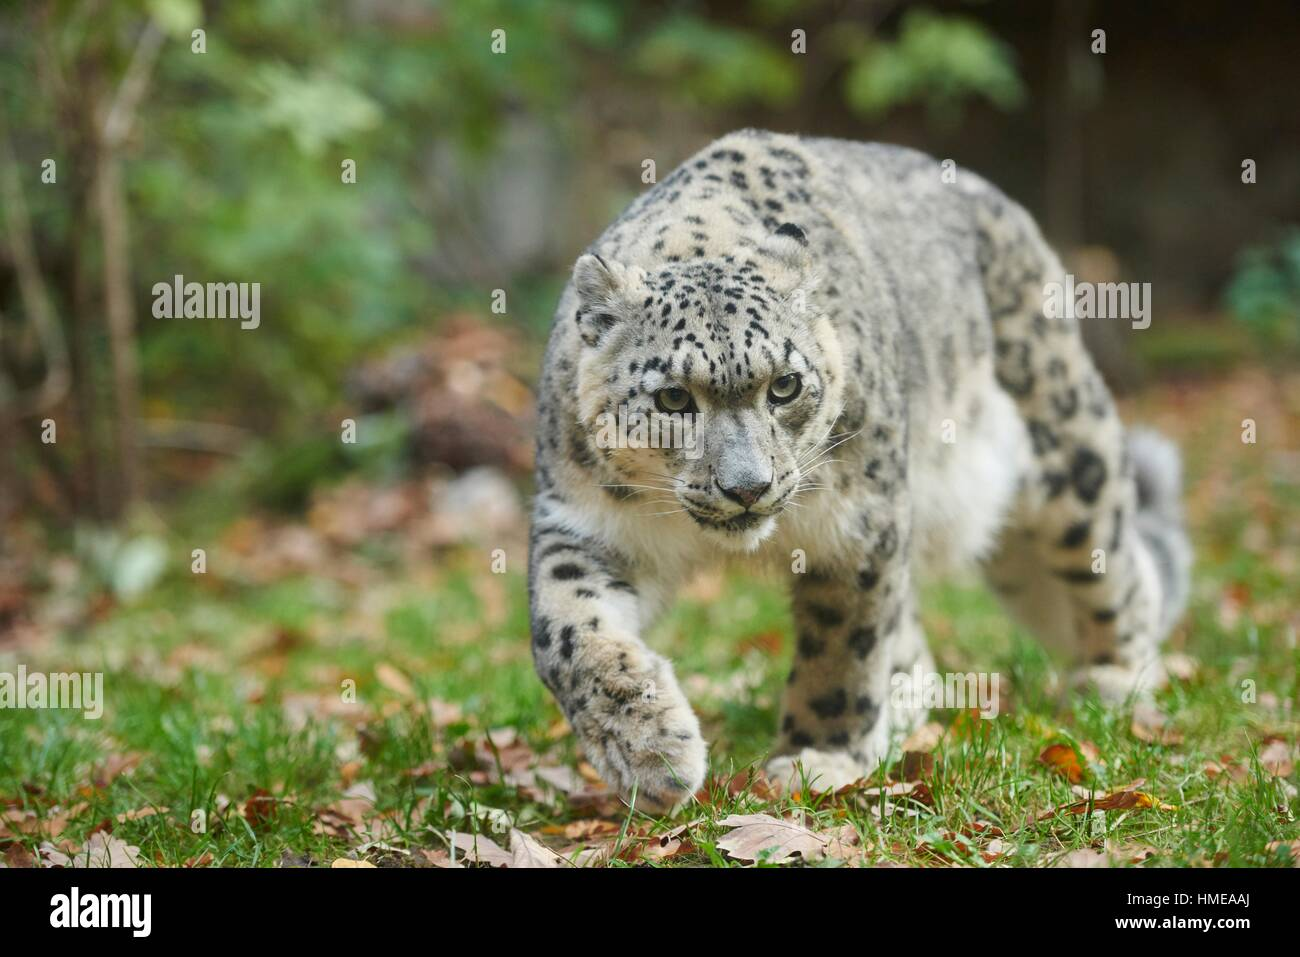 Snow leopard (Panthera uncia syn. Uncia uncia) in autumn. Captive. Germany. - Stock Image